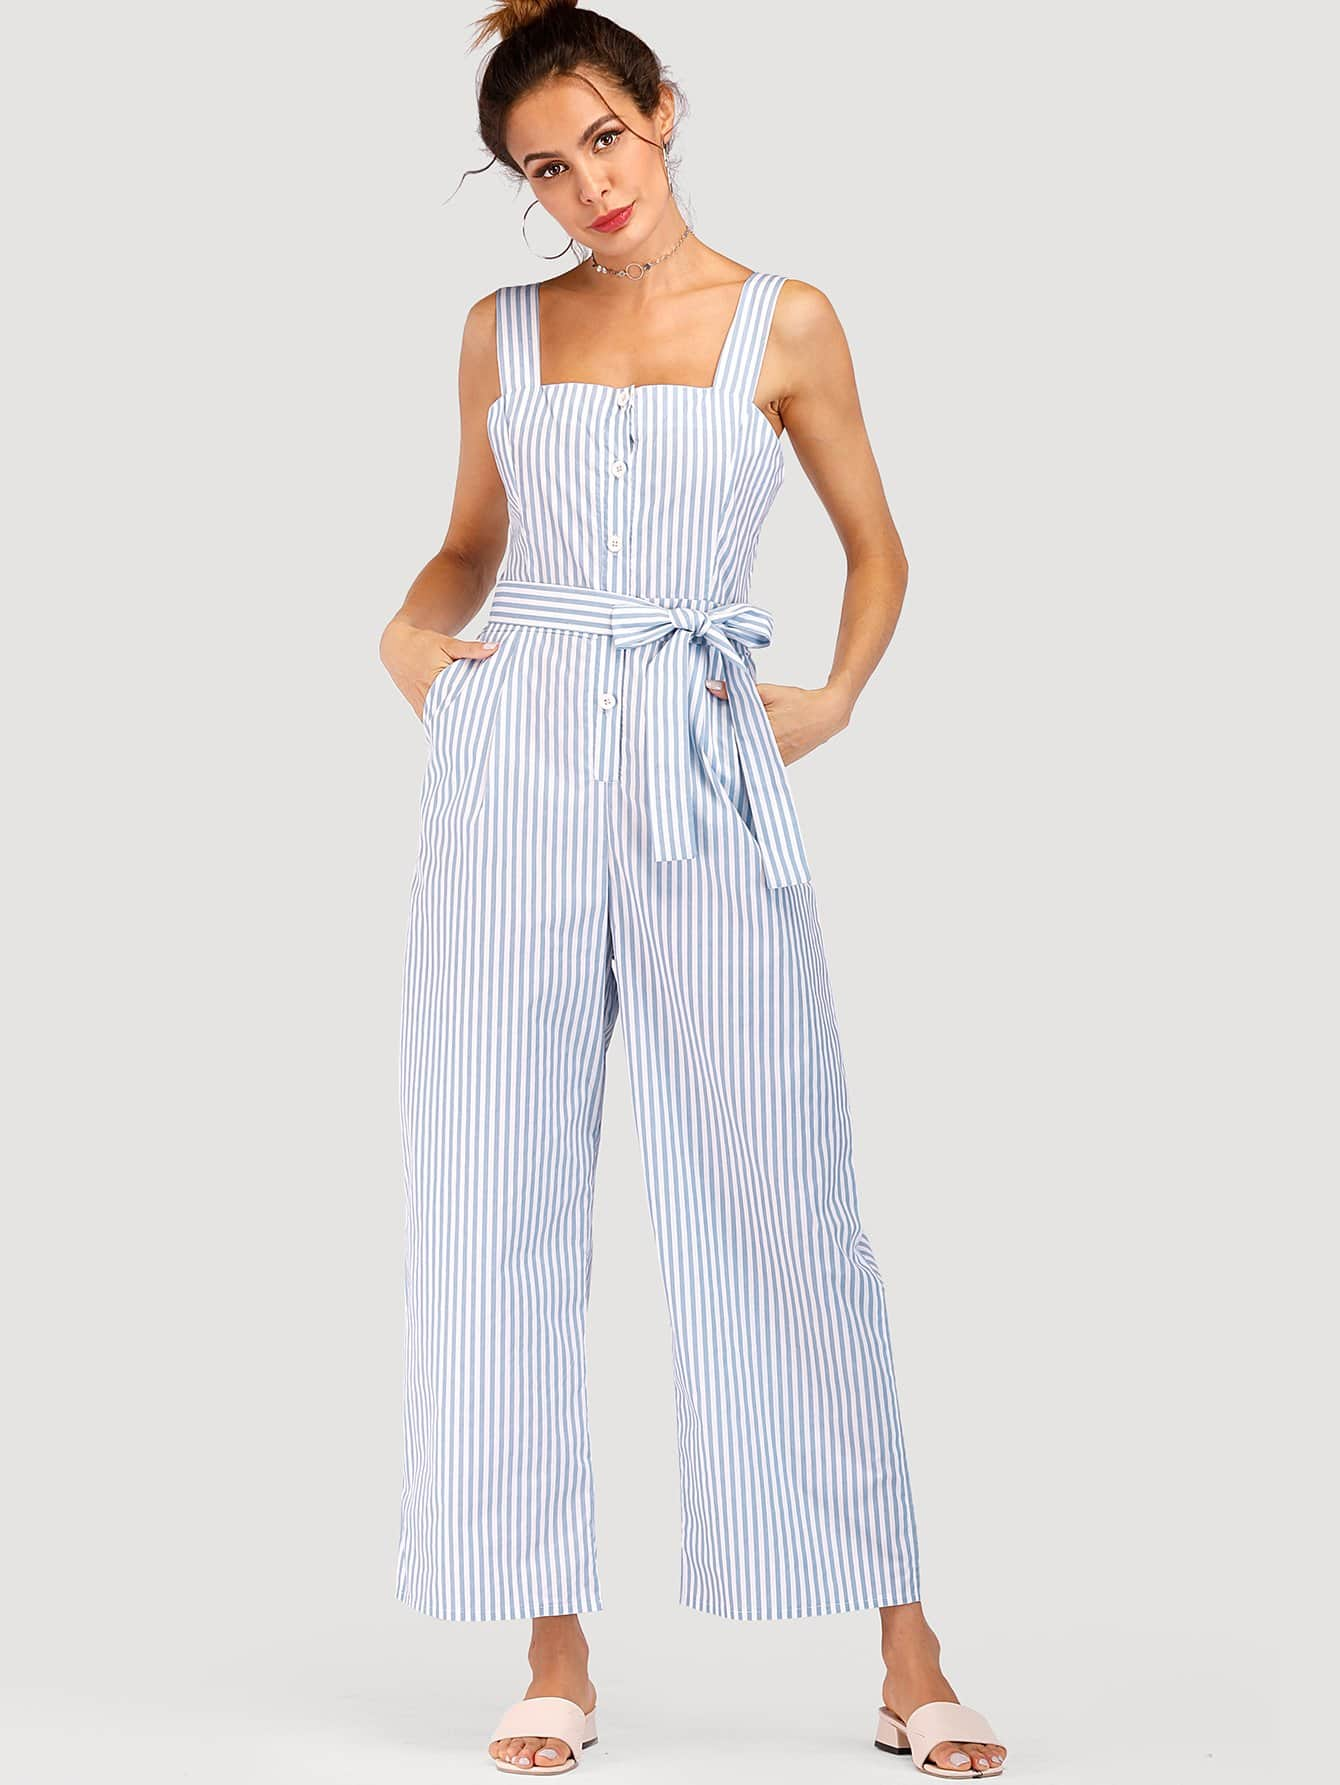 Striped Belted Wide Leg Jumpsuit shirred panel wide leg striped jumpsuit